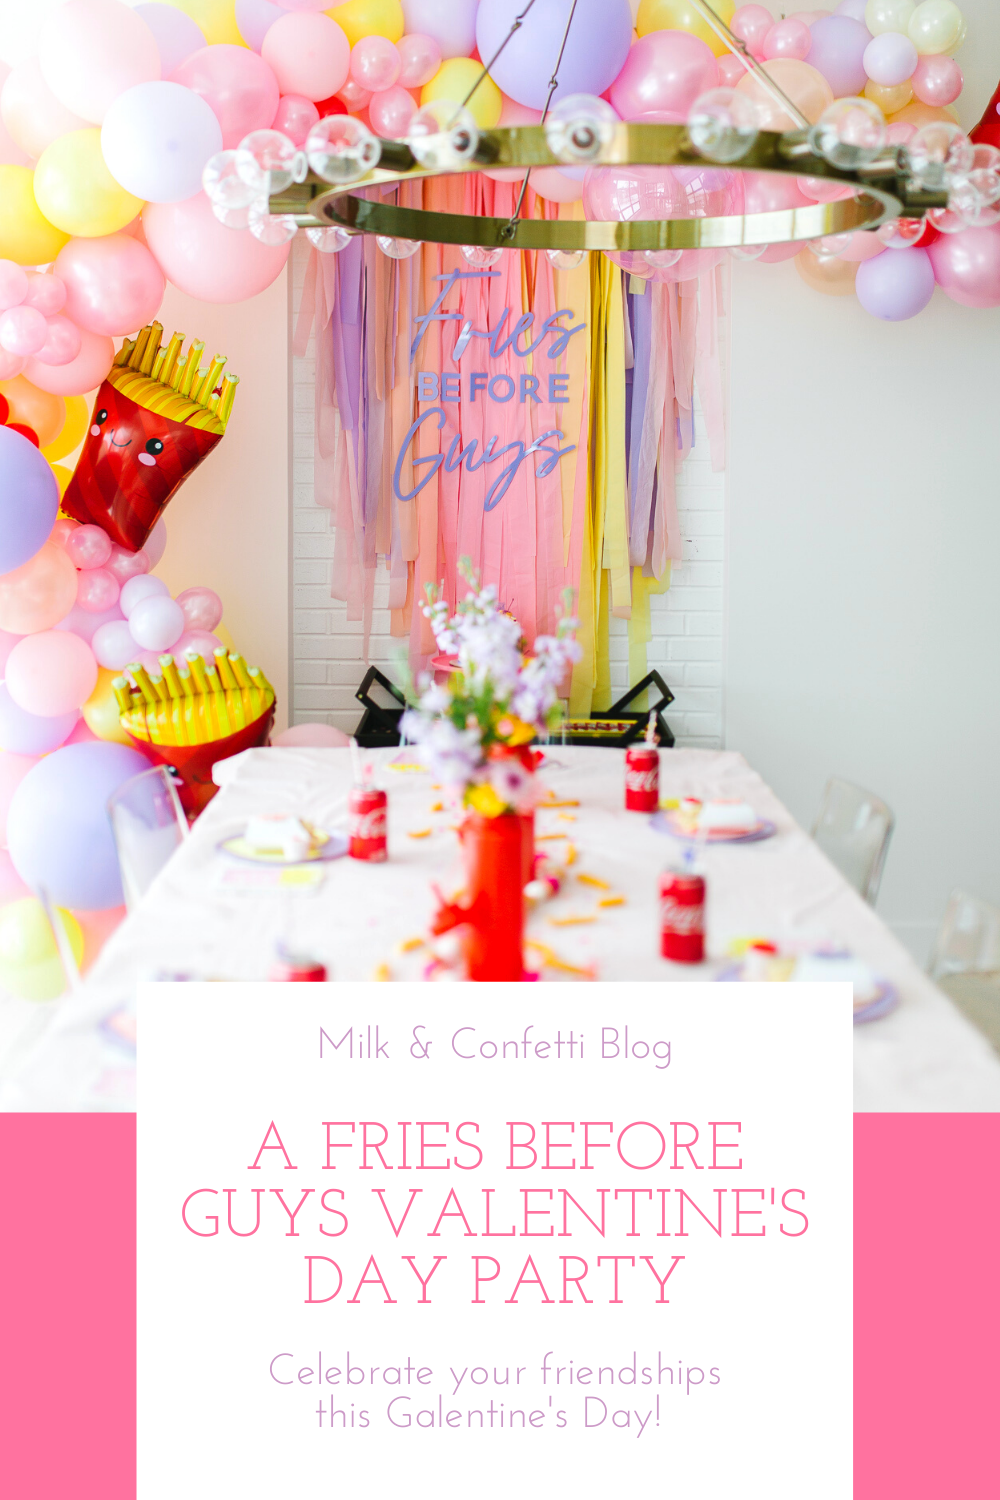 A fries before guys Valentines Day party decorated pink purple and yellow streamers, balloons, flowers, fries and ketchup bottles all for a Galentine's Day theme for kids.